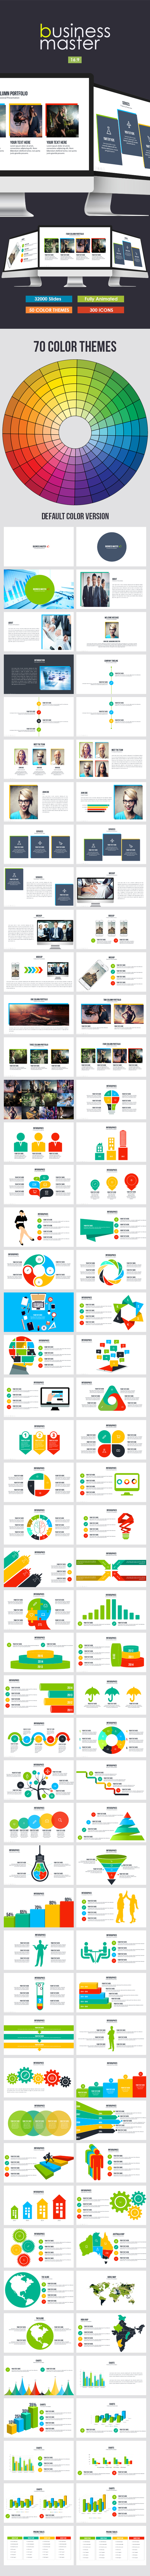 Business Master Keynote Presentation Template - Business Keynote Templates